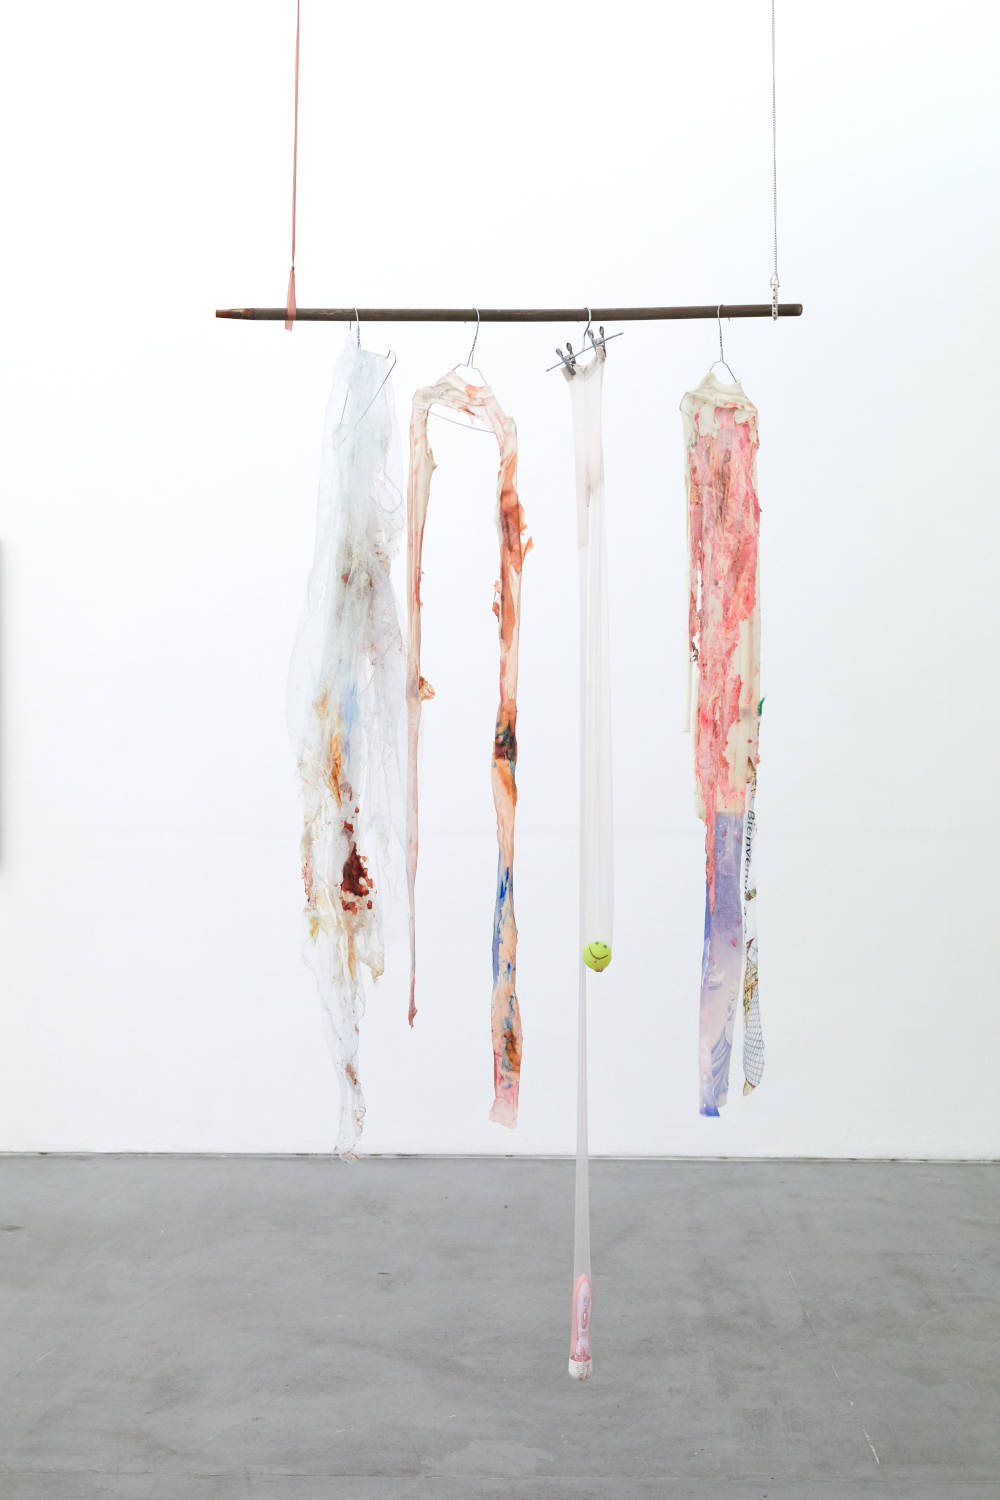 Mimosa Echard, Love moustiquaire, 2019. Synthetic fabric, acrylic glue, latex, necklace, bracelet, chain, ribbon, hanger, plastic ball, vibrator, pigment, ink 110 x 218 cm (43.31 x 85.83 inches)Courtesy of the artist & VNH Gallery. Photo: Johanna Benaïnous